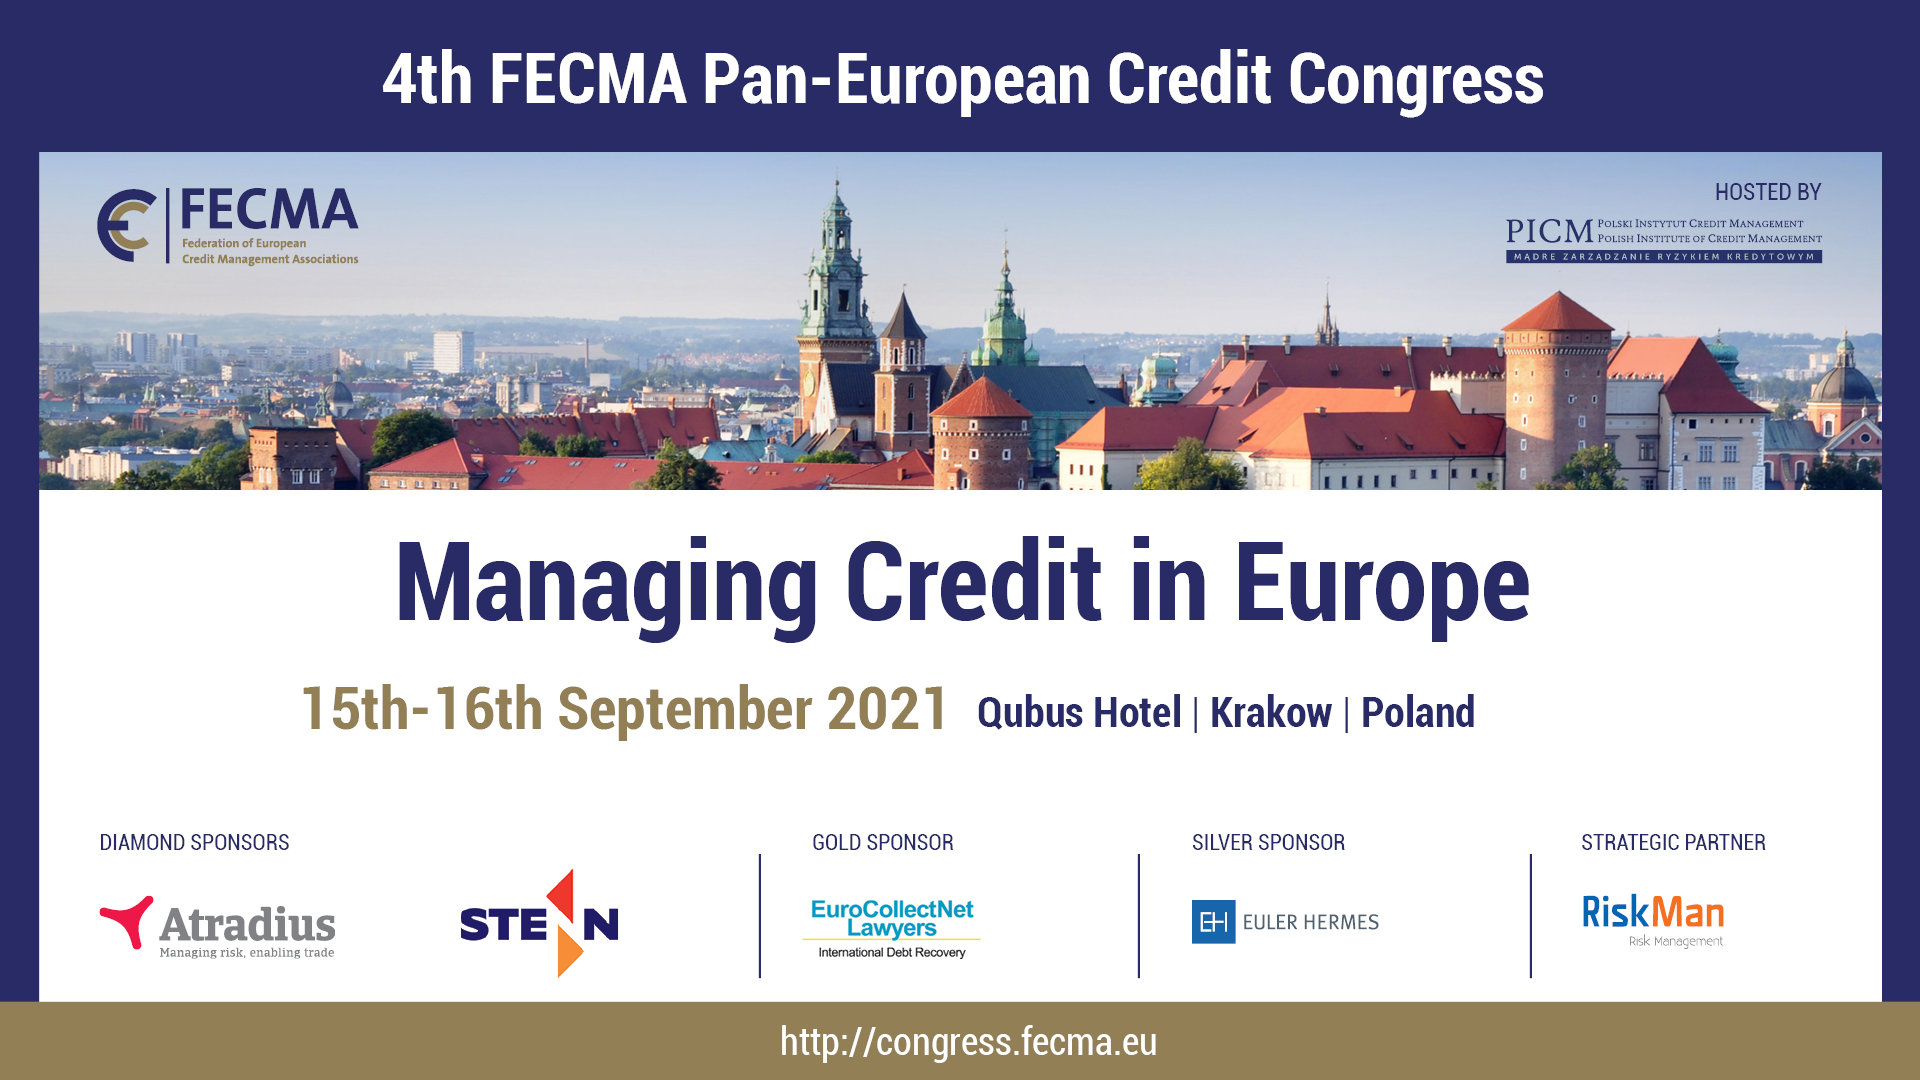 FECMA 4th Congress